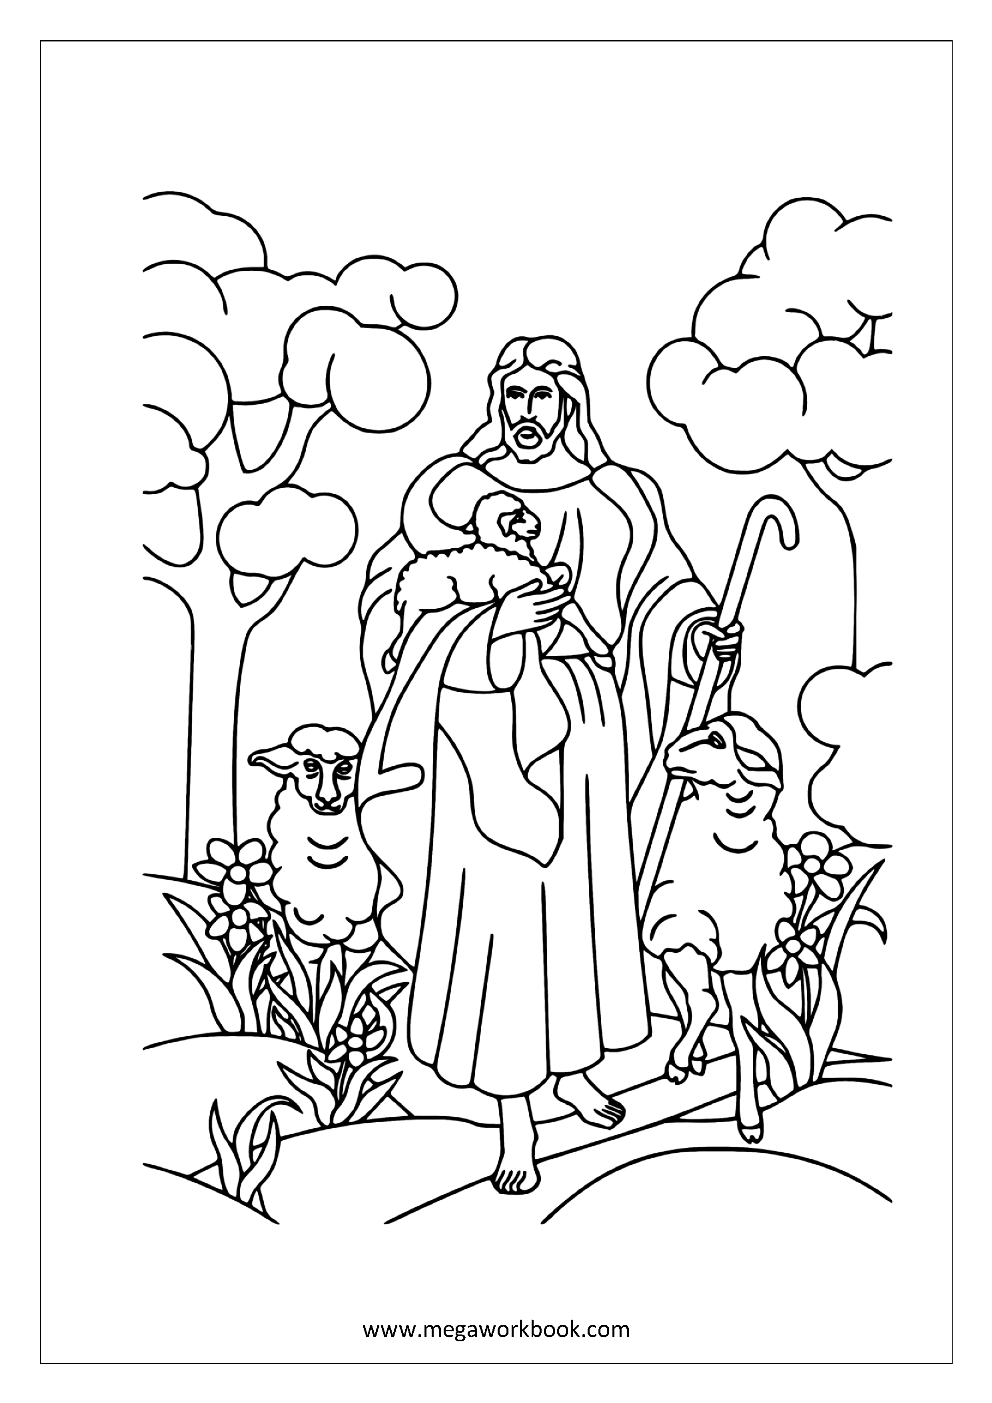 Christmas Coloring Pages - Christmas Coloring Sheets ...